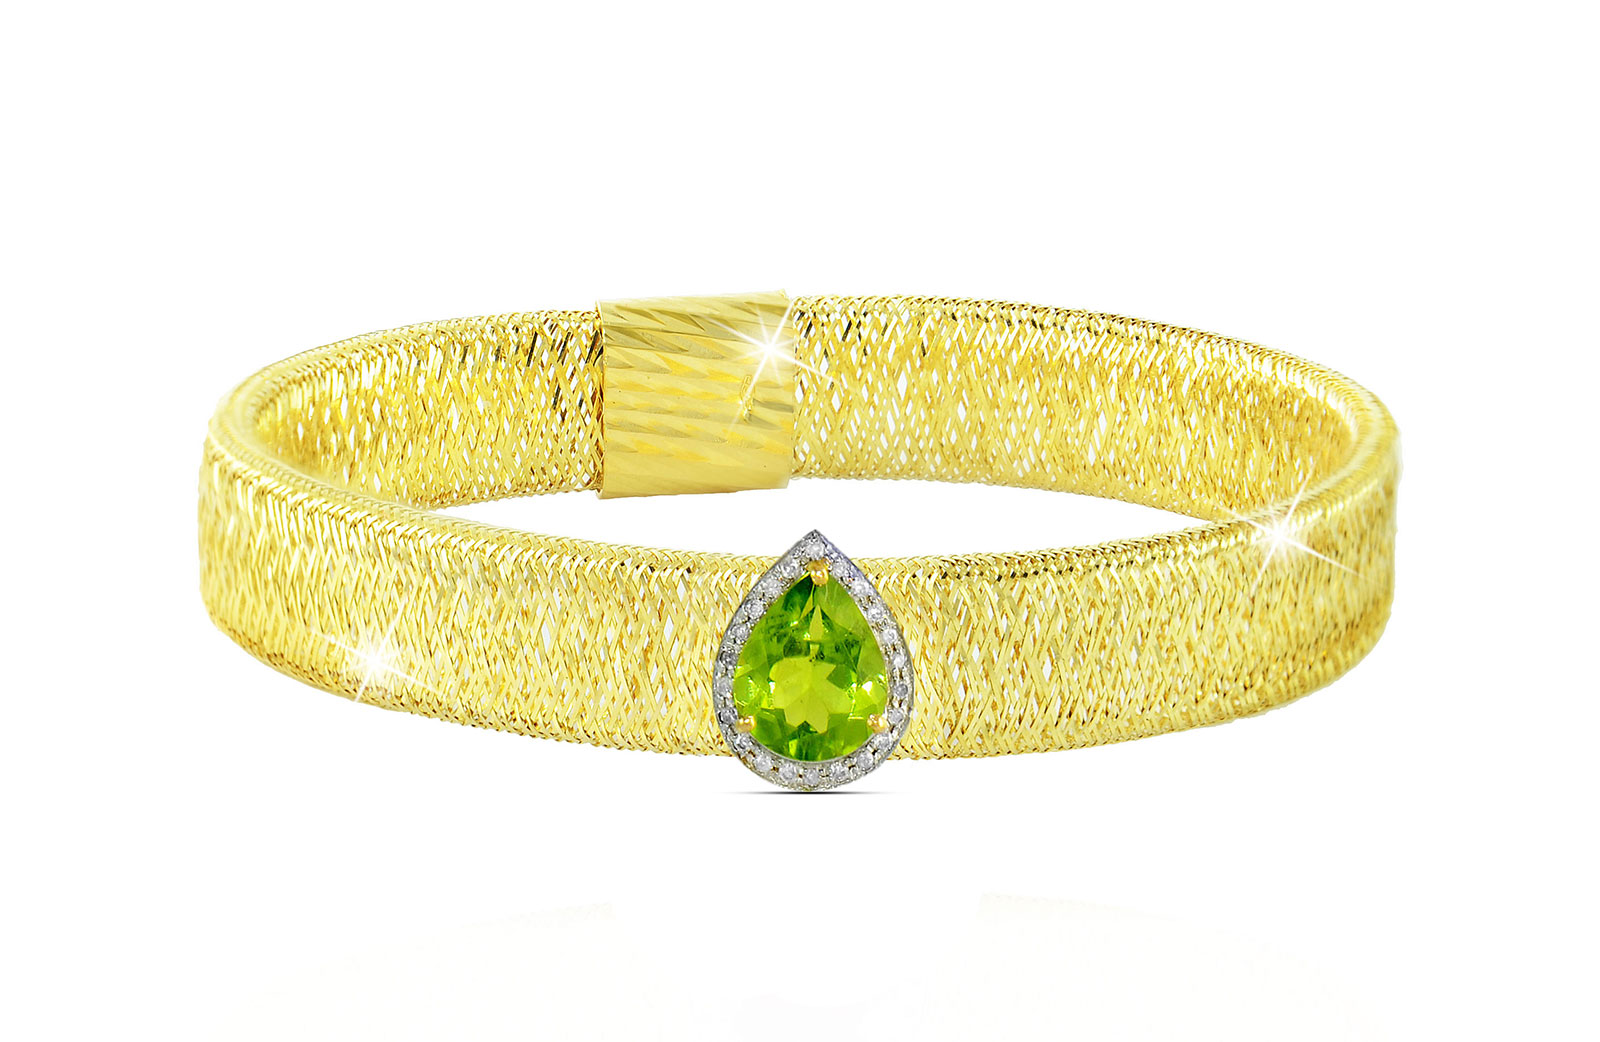 Vera Perla 18K Gold 0.12ct Diamonds, Peridot Mesh Bracelet